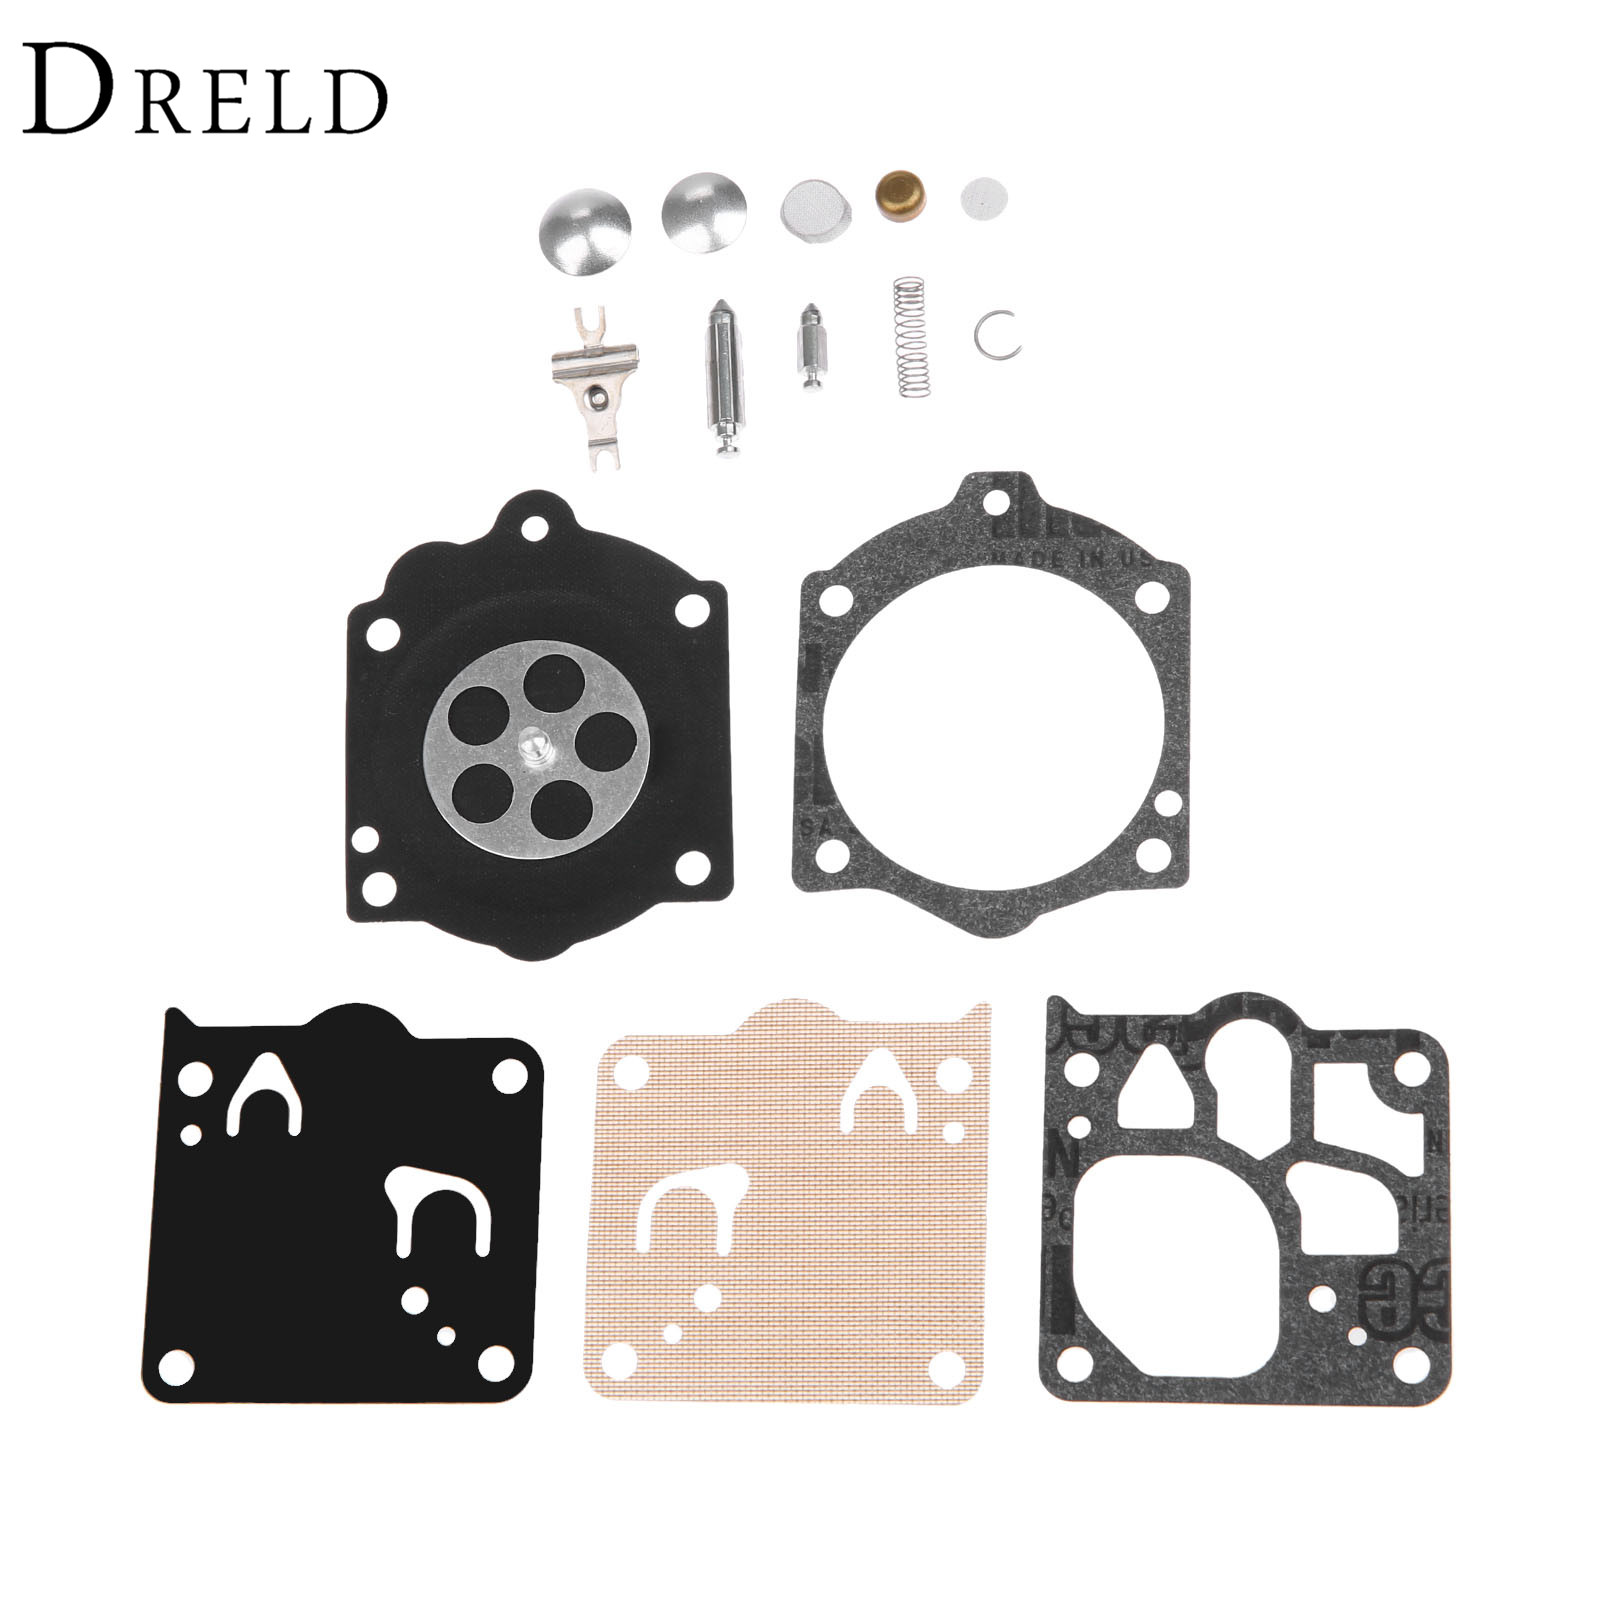 DRELD Carburetor Carb Rebuild Kit Gasket Diaphragm for Stihl <font><b>MS660</b></font> Chainsaw Walbro WJ Carb Replace Walbro K10-WJ/New K12-WJ image